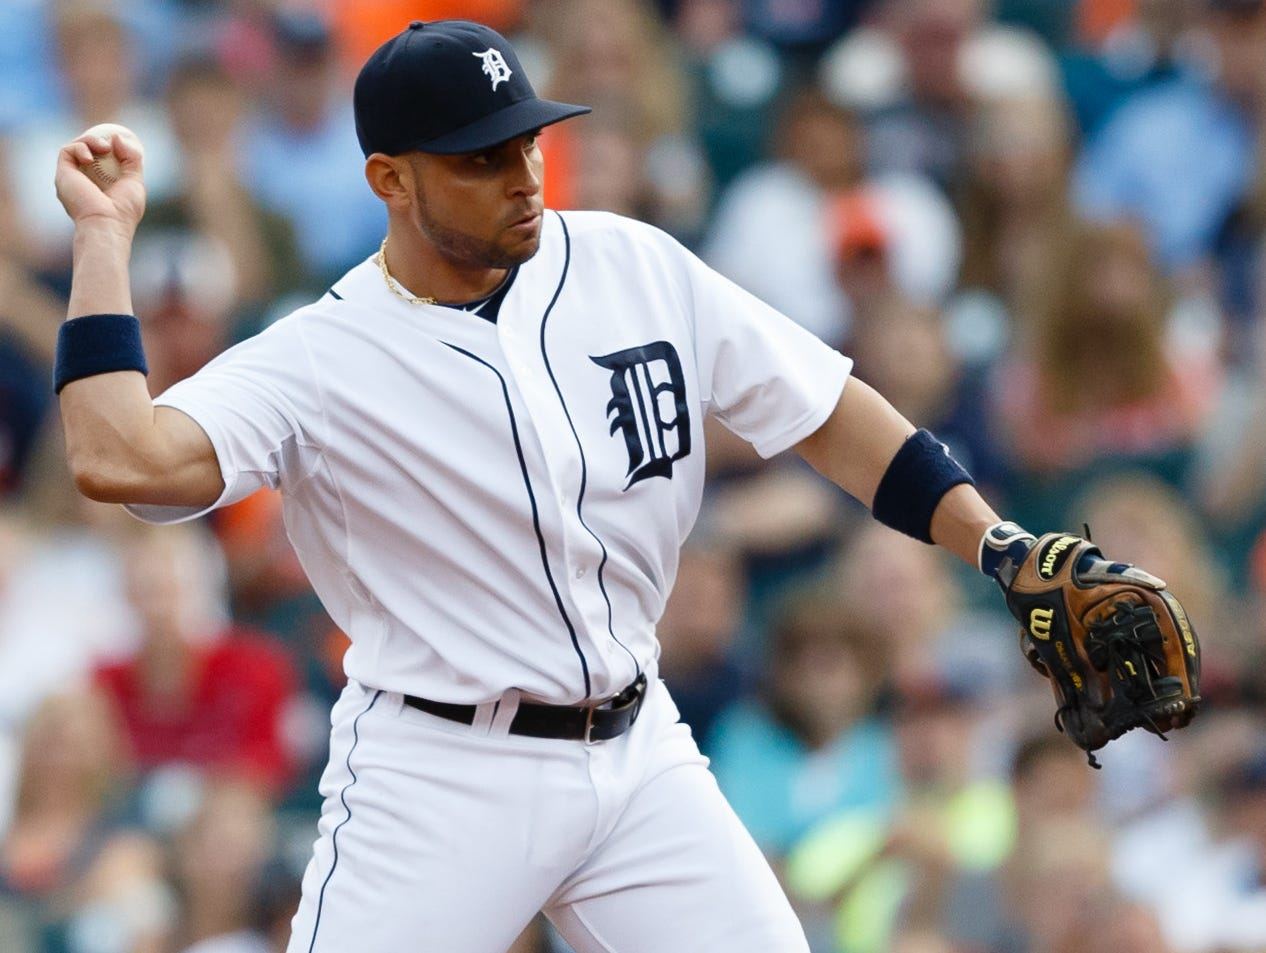 <p>13-Omar Infante, 2B: Signed a 4-year, $30.25 million contract with the Royals.</p>